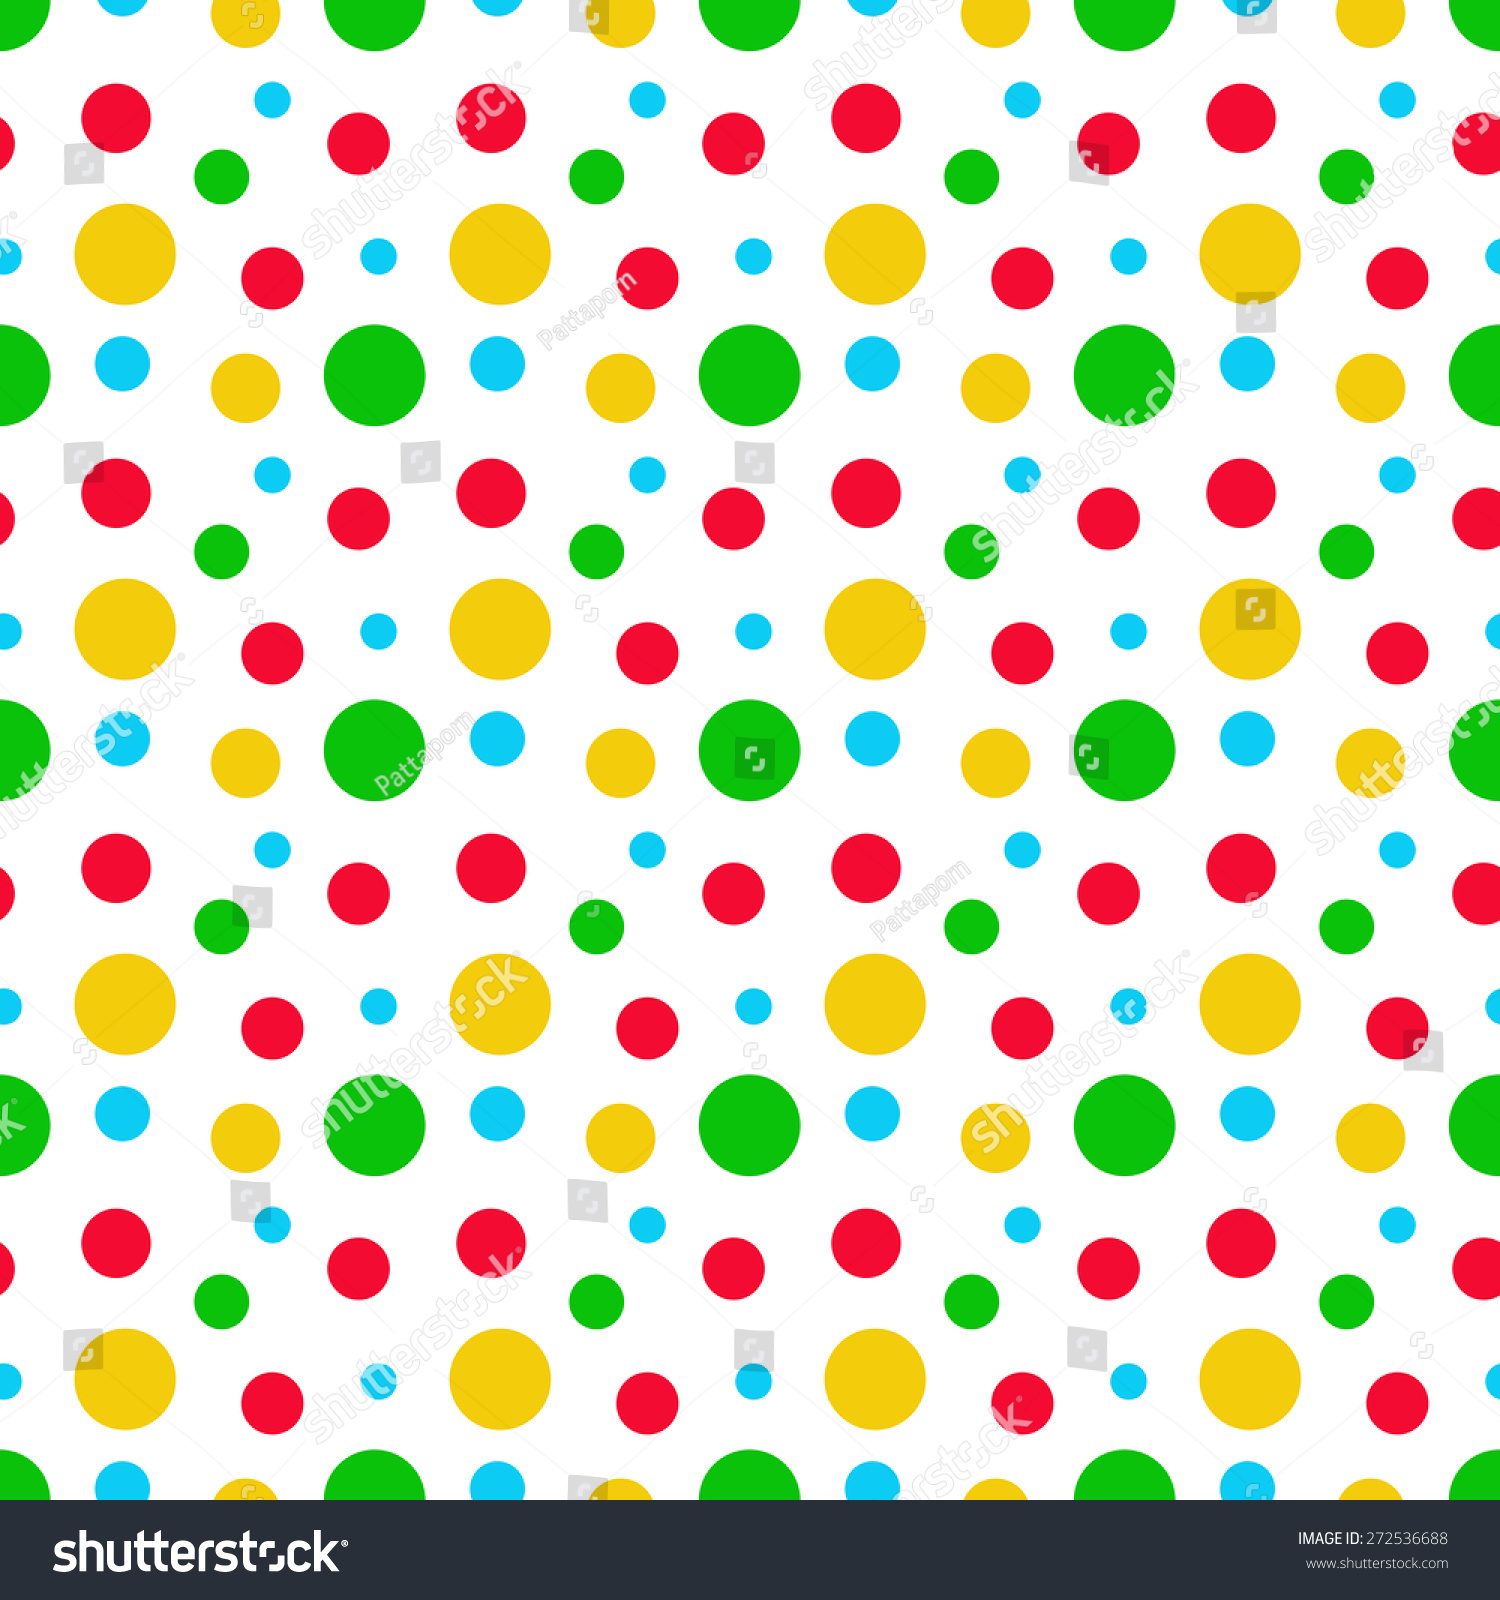 green blue red yellow circles pattern stock illustration